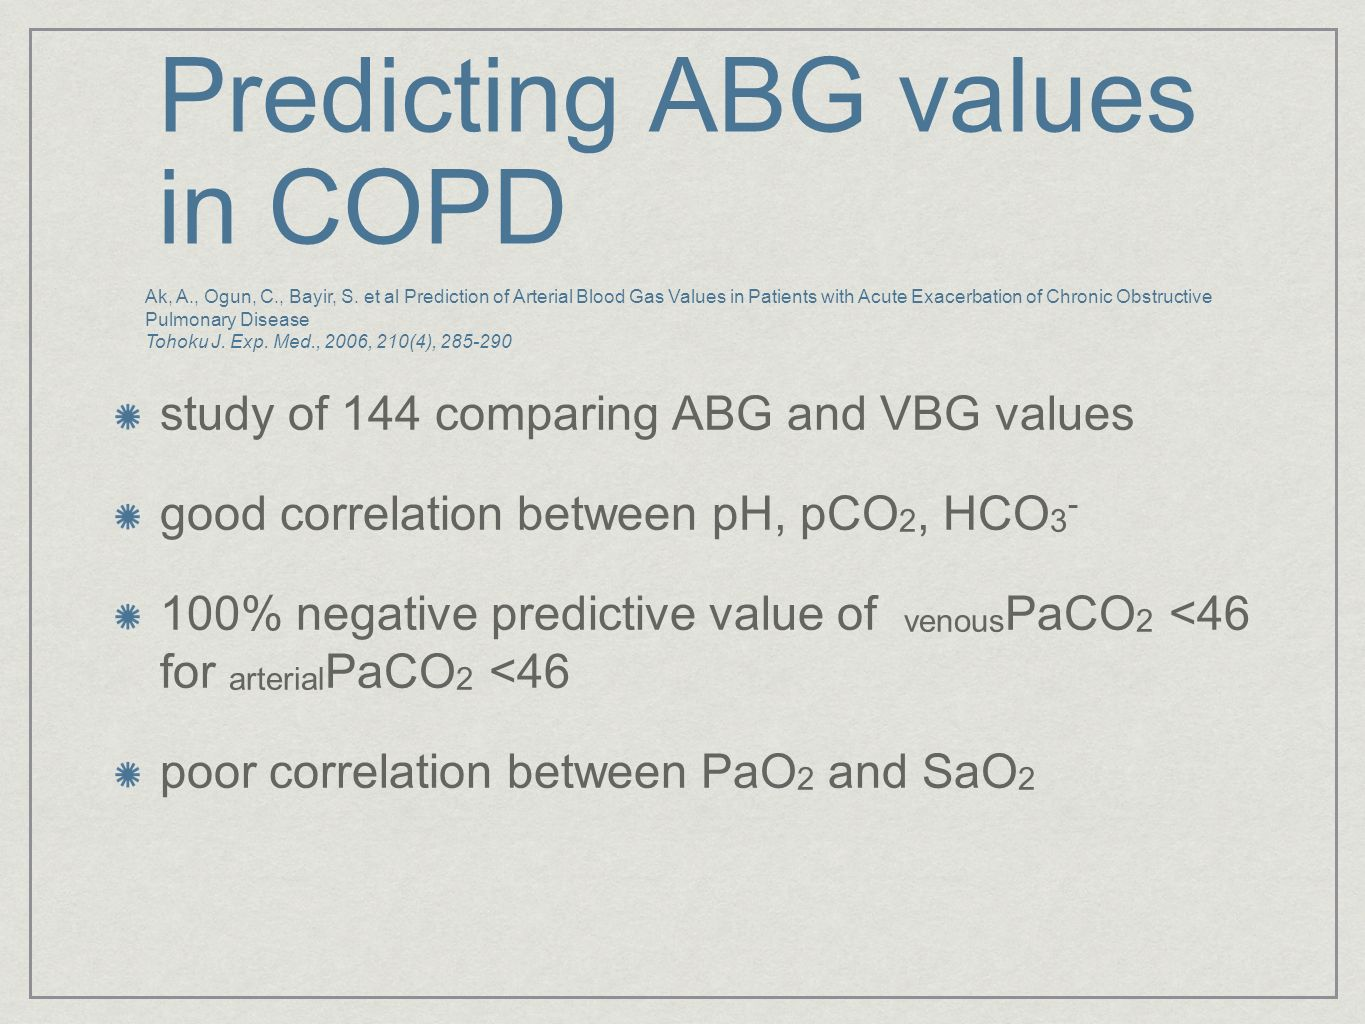 Predicting ABG values in COPD